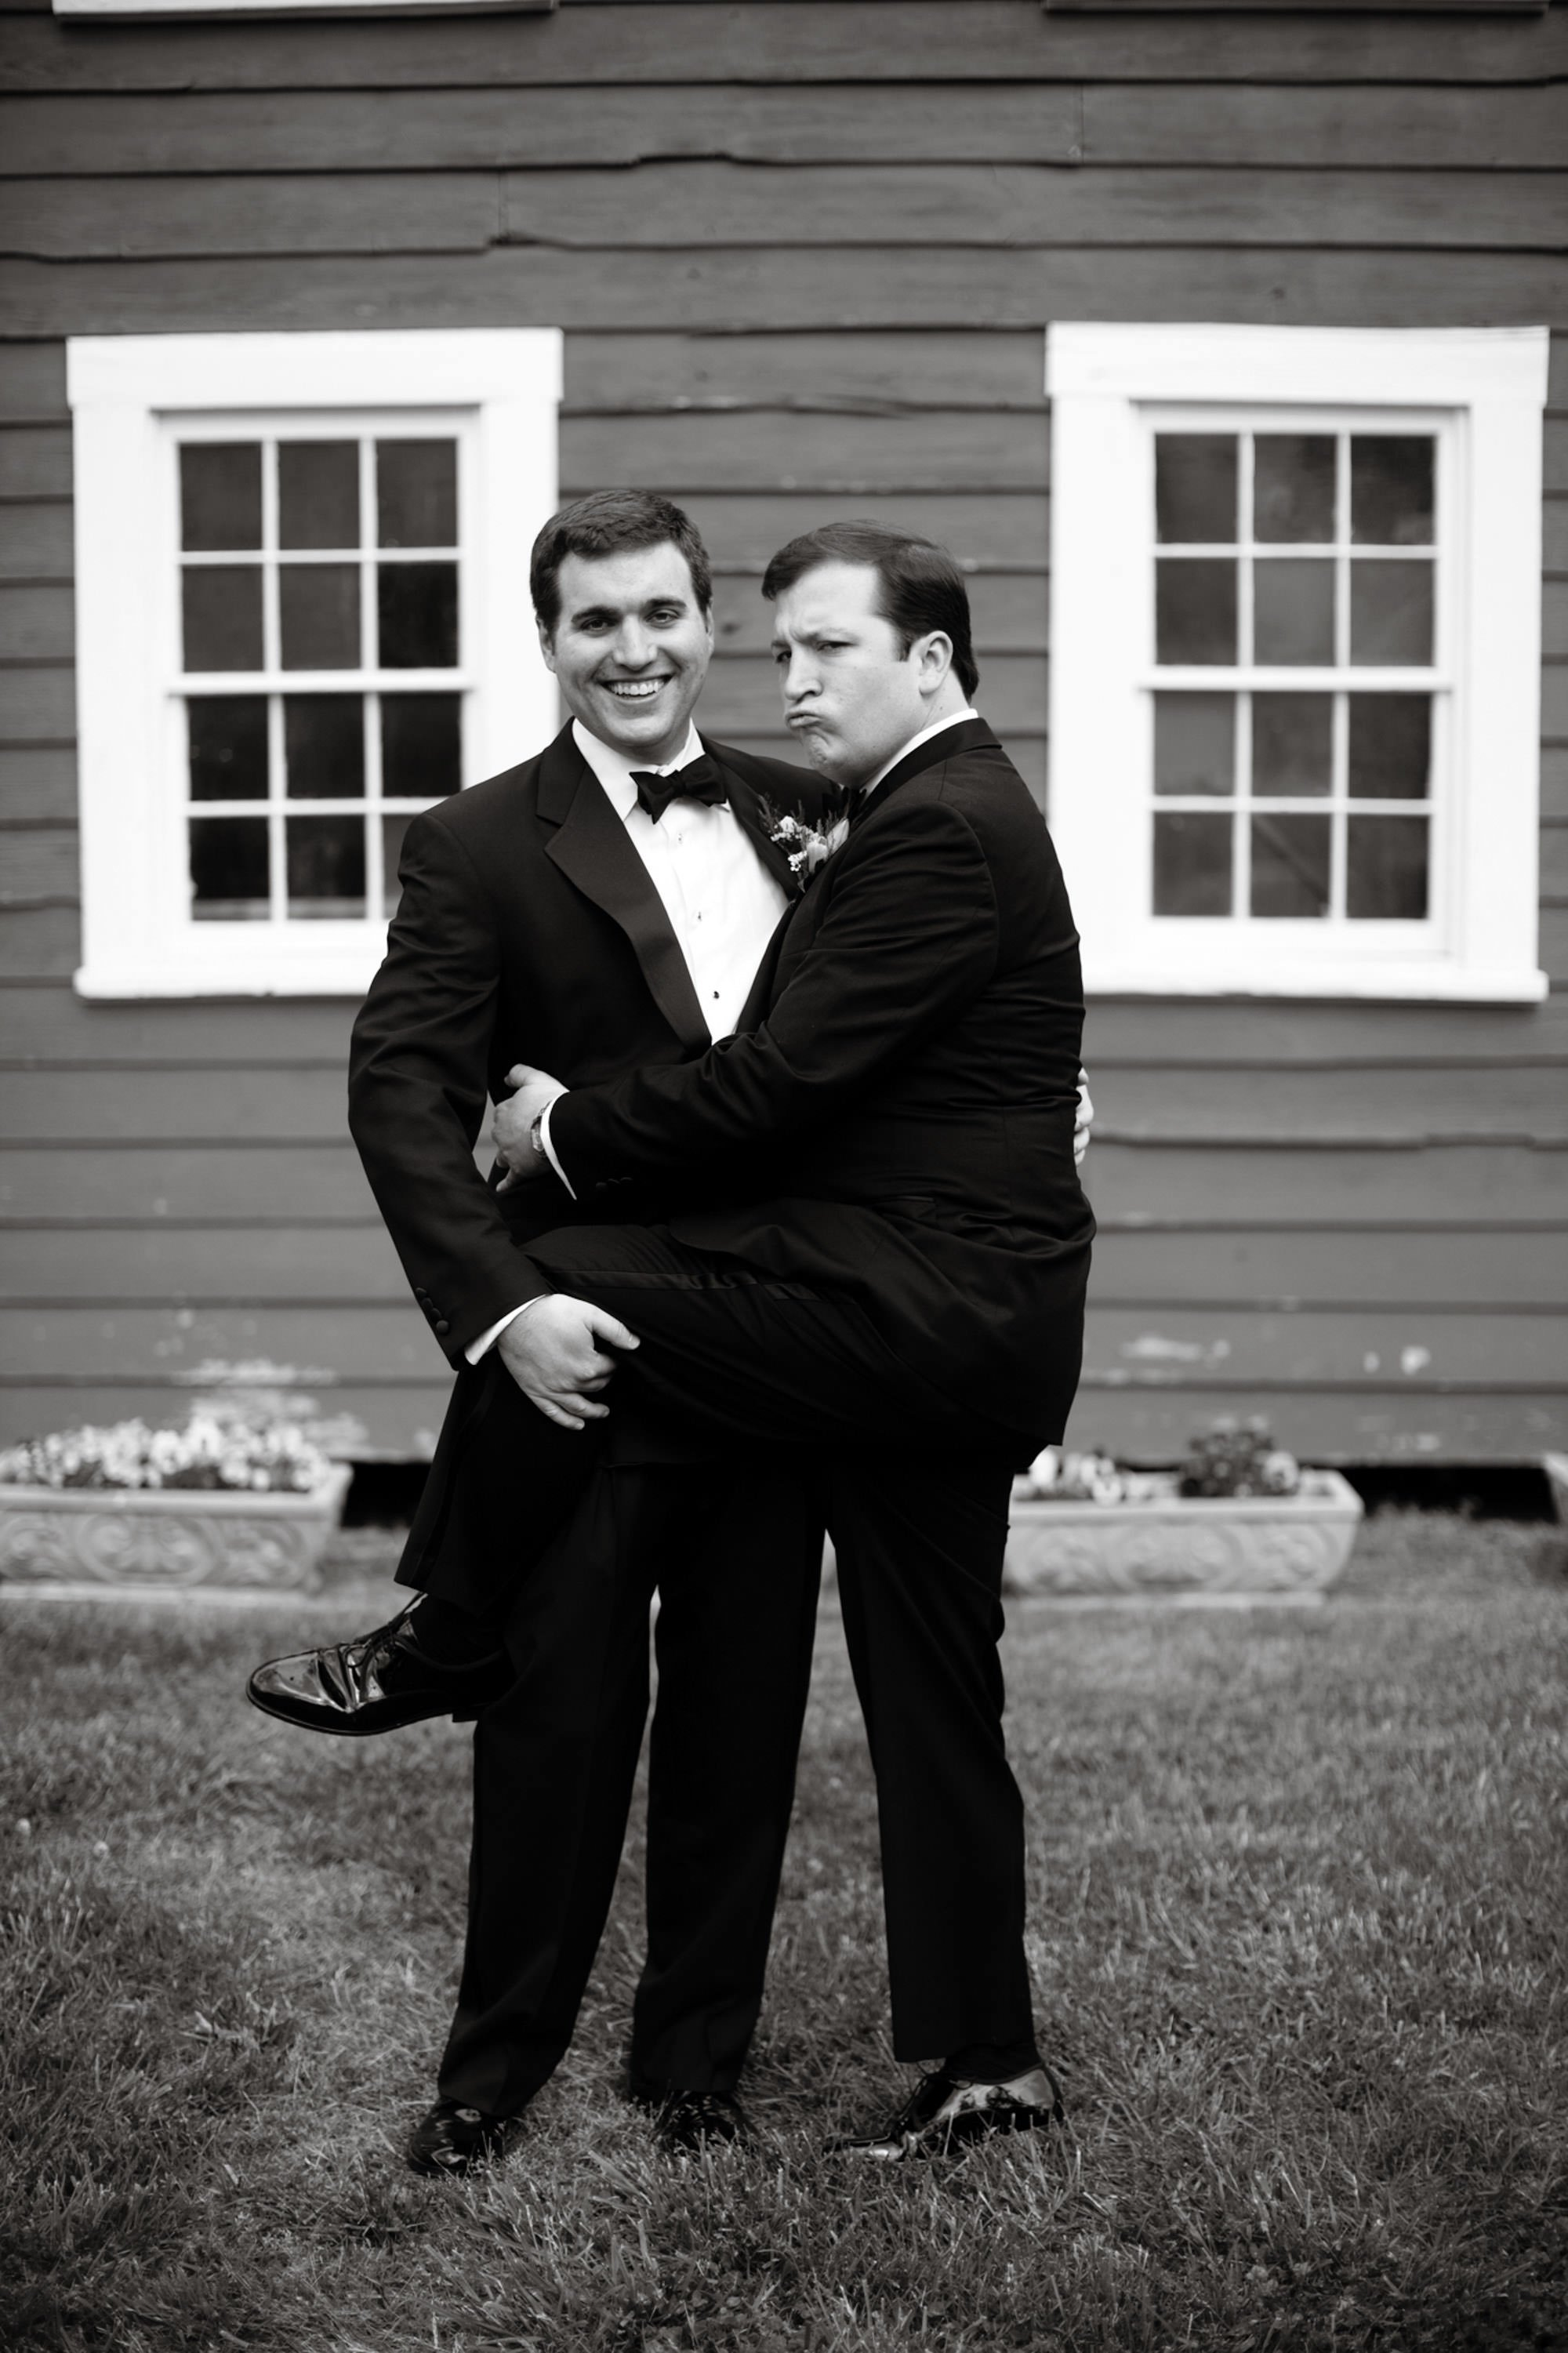 A fun portrait of the groom and one of his groomsmen.